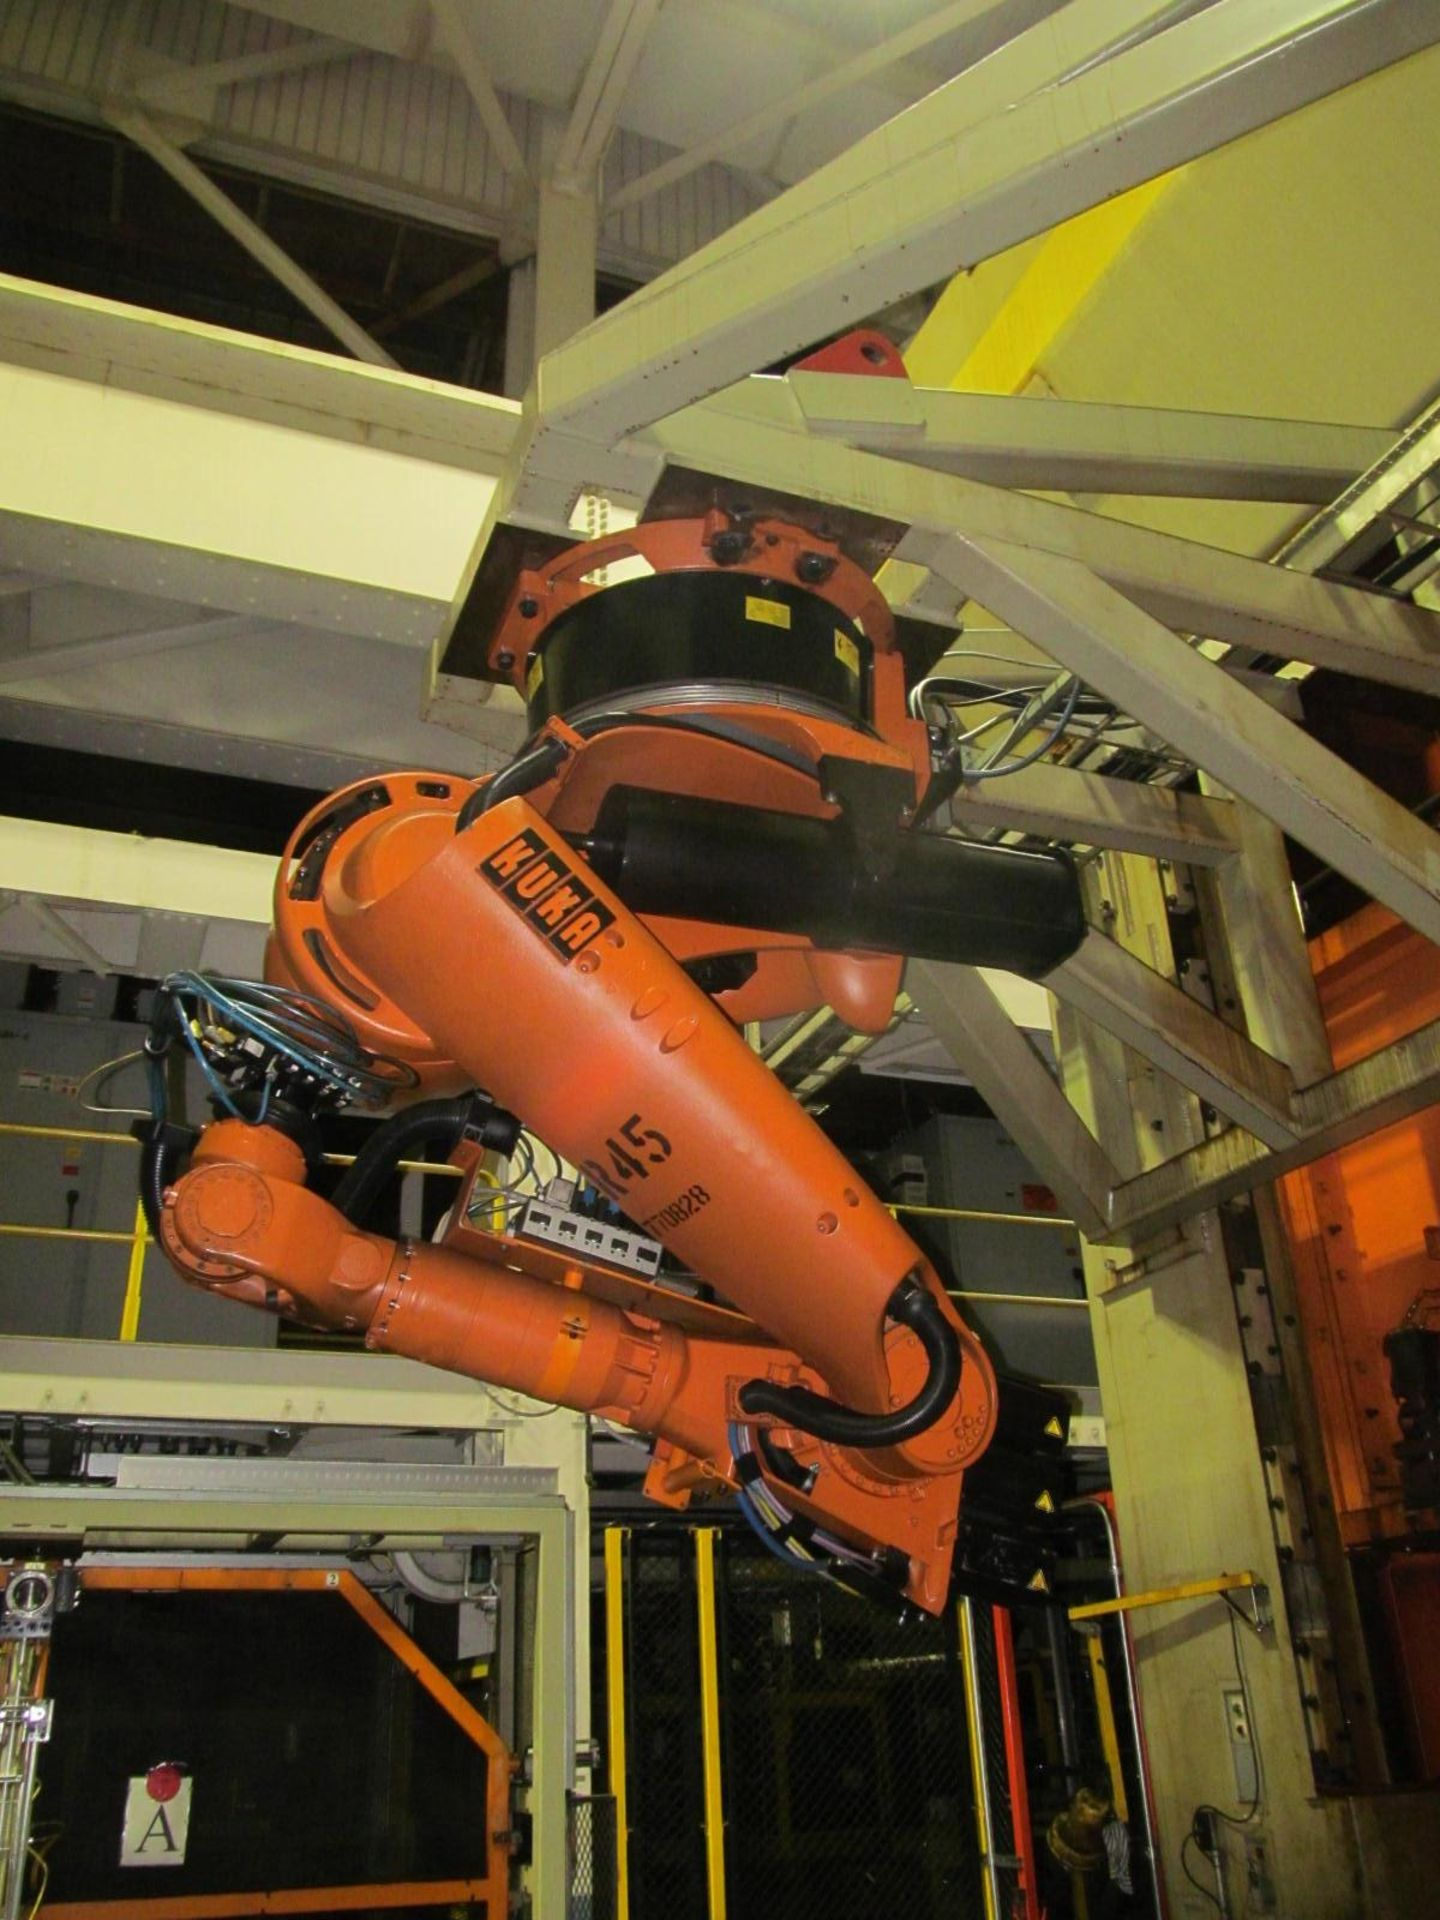 Lot 11 - 6-AXIS KUKA TRANSFER ROBOT w/ CONTROL & TEACH PAD, *PLEASE NOTE: SUBJECT TO SELLER CONFIRMATION*